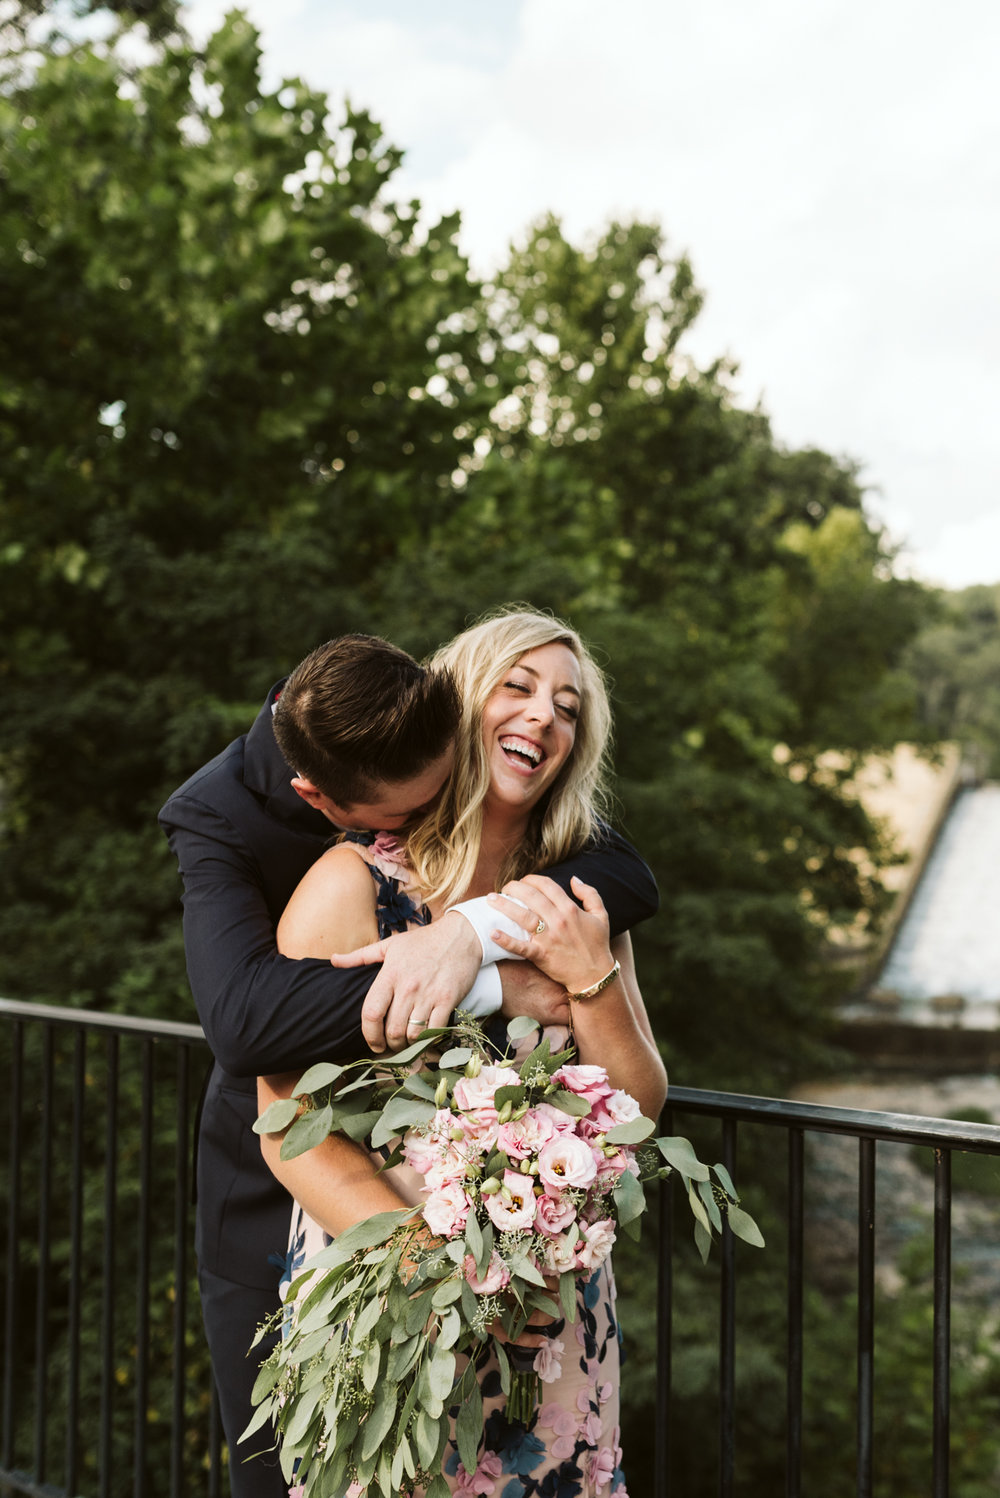 groom hugging bride from behind and laughing